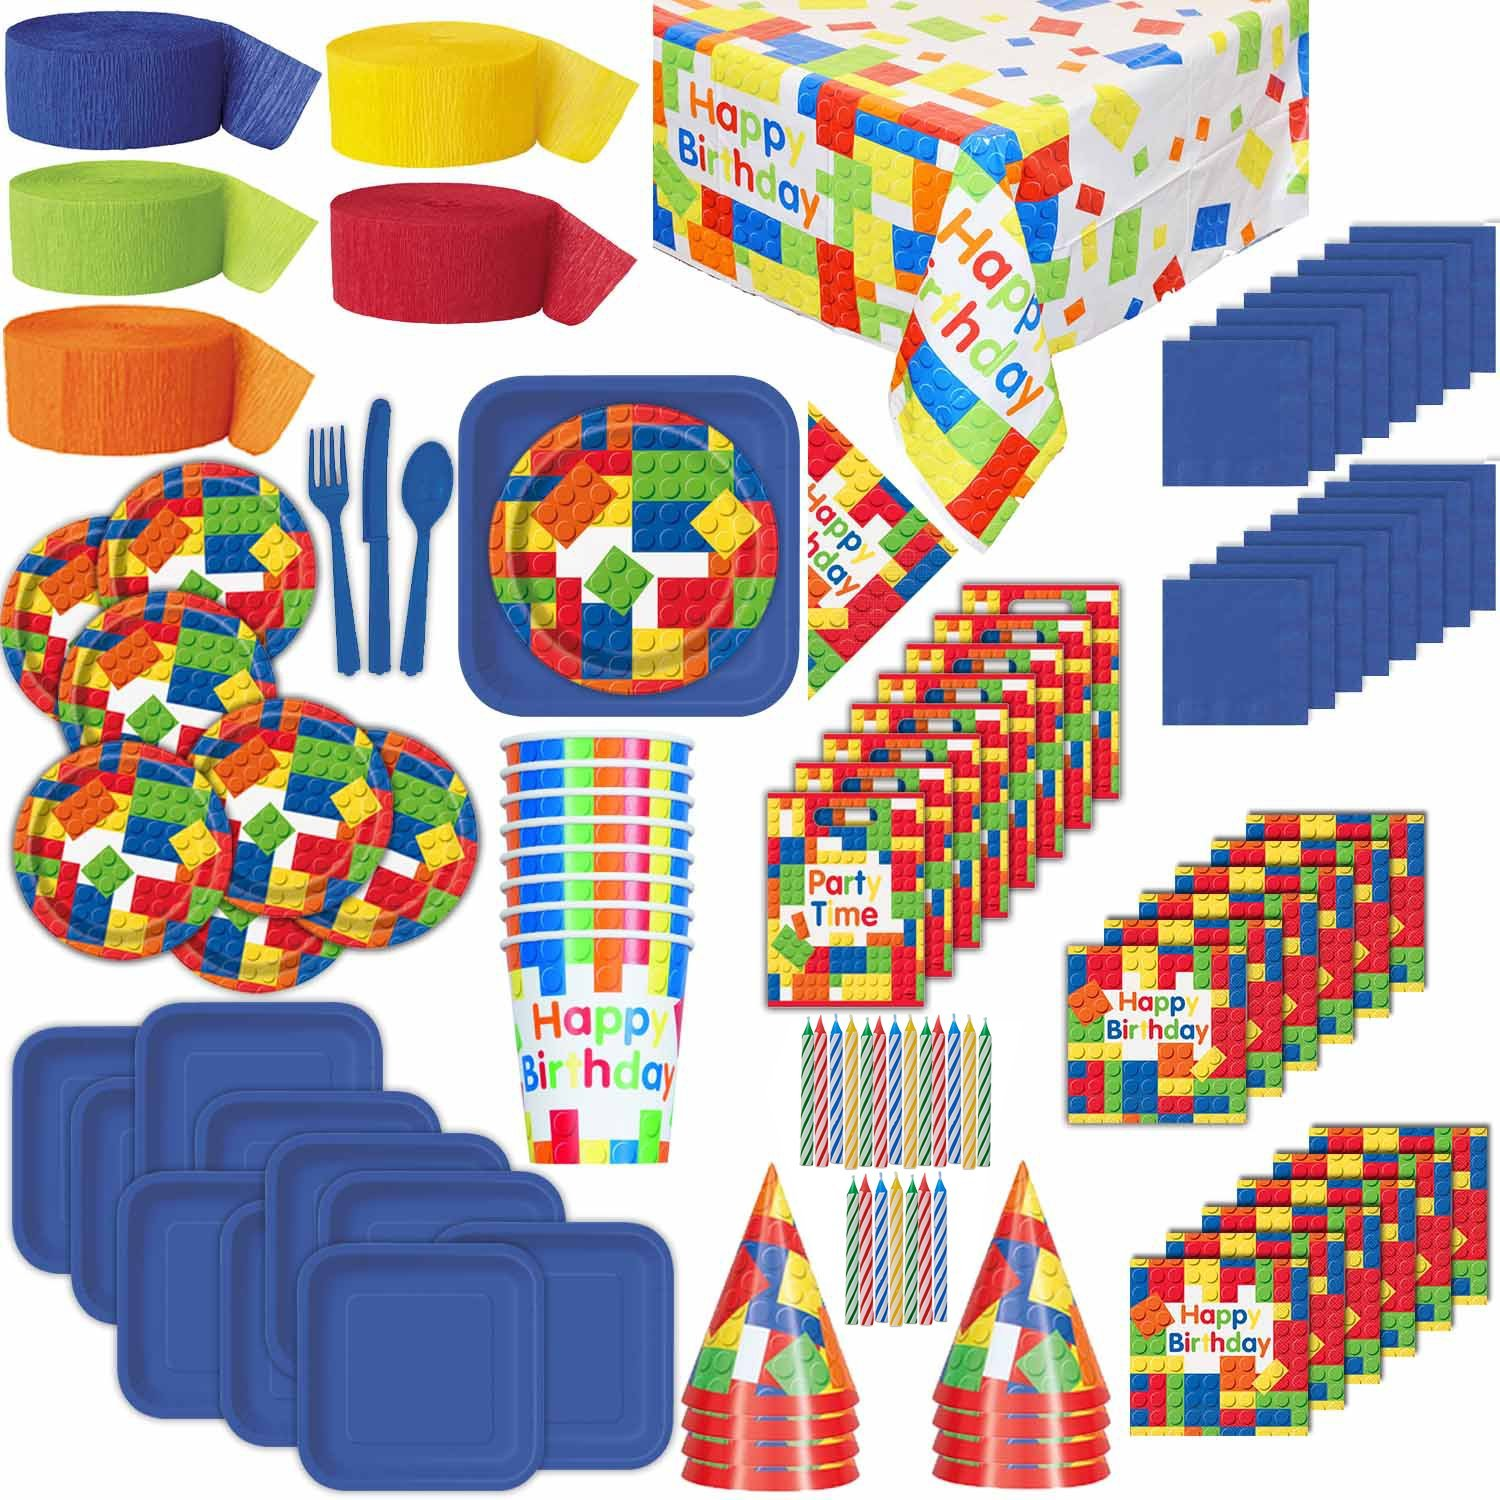 HeroFiber Lego Theme Birthday Party Supplies for 16: Plates, Cups, Napkins, Tablecloth, Cutlery, Streamers, Candles, Loot Bags, Birthday Hats